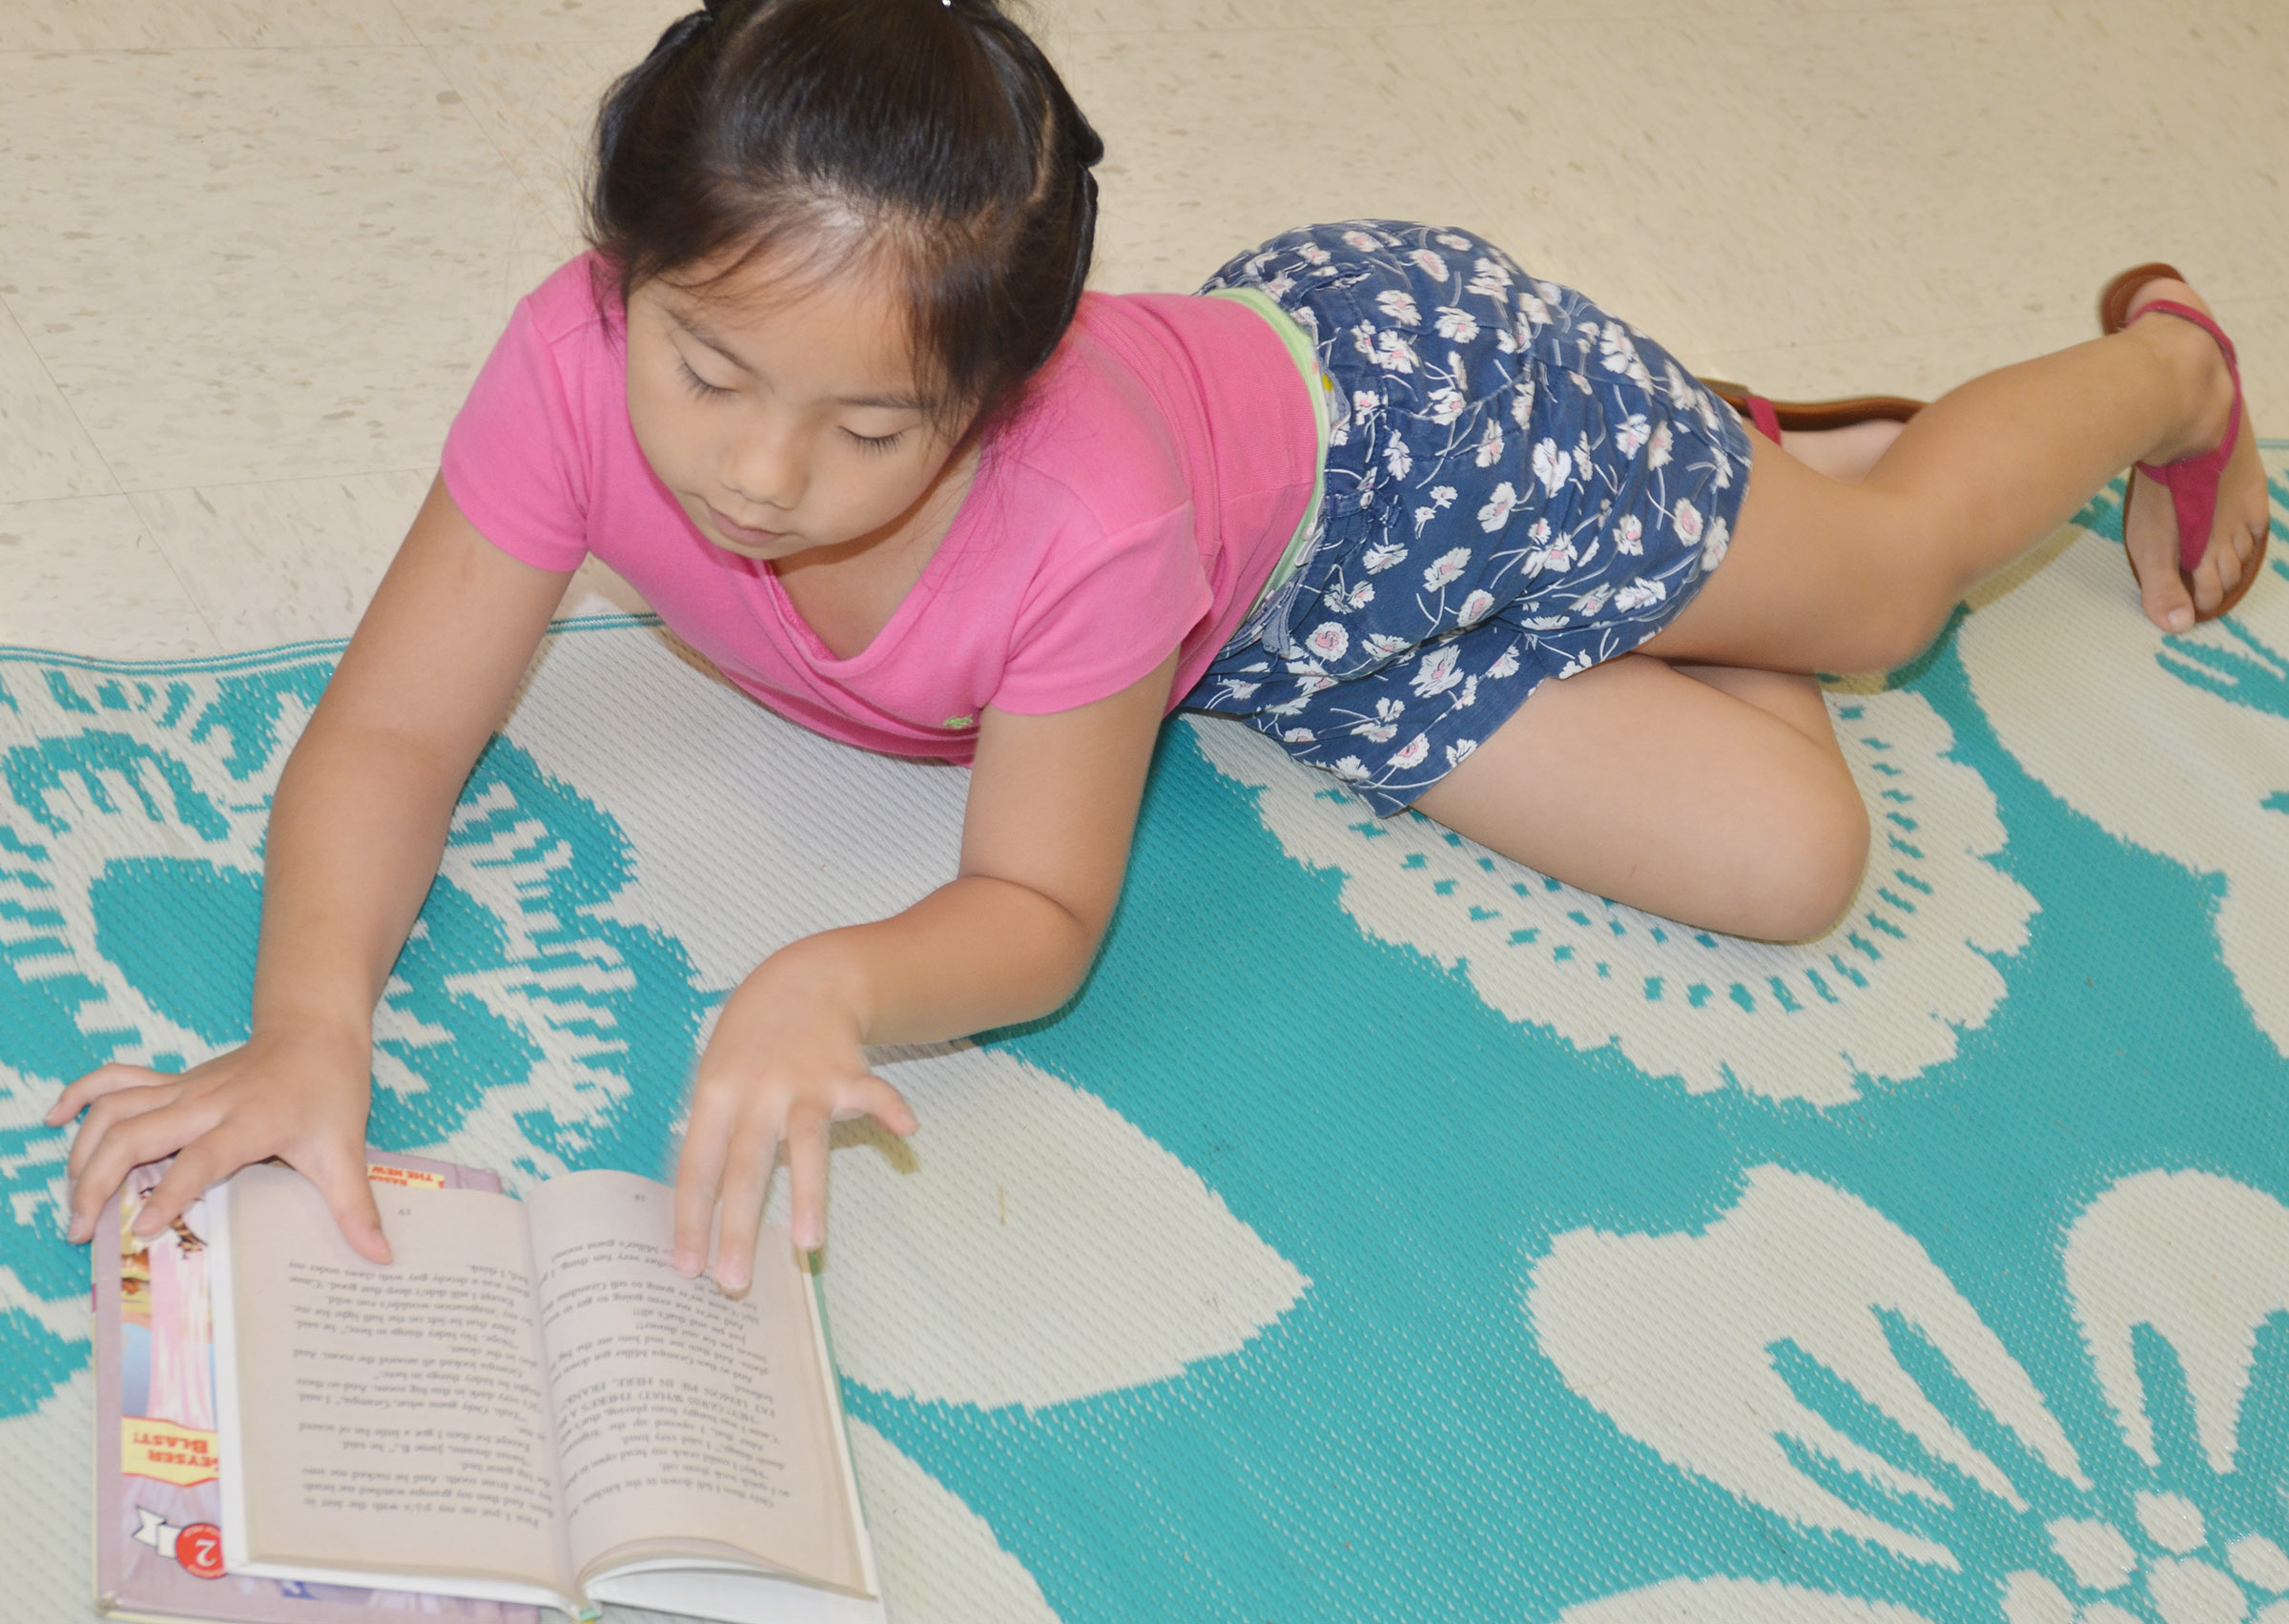 CES second-grader Tina Jiang reads a chapter book.